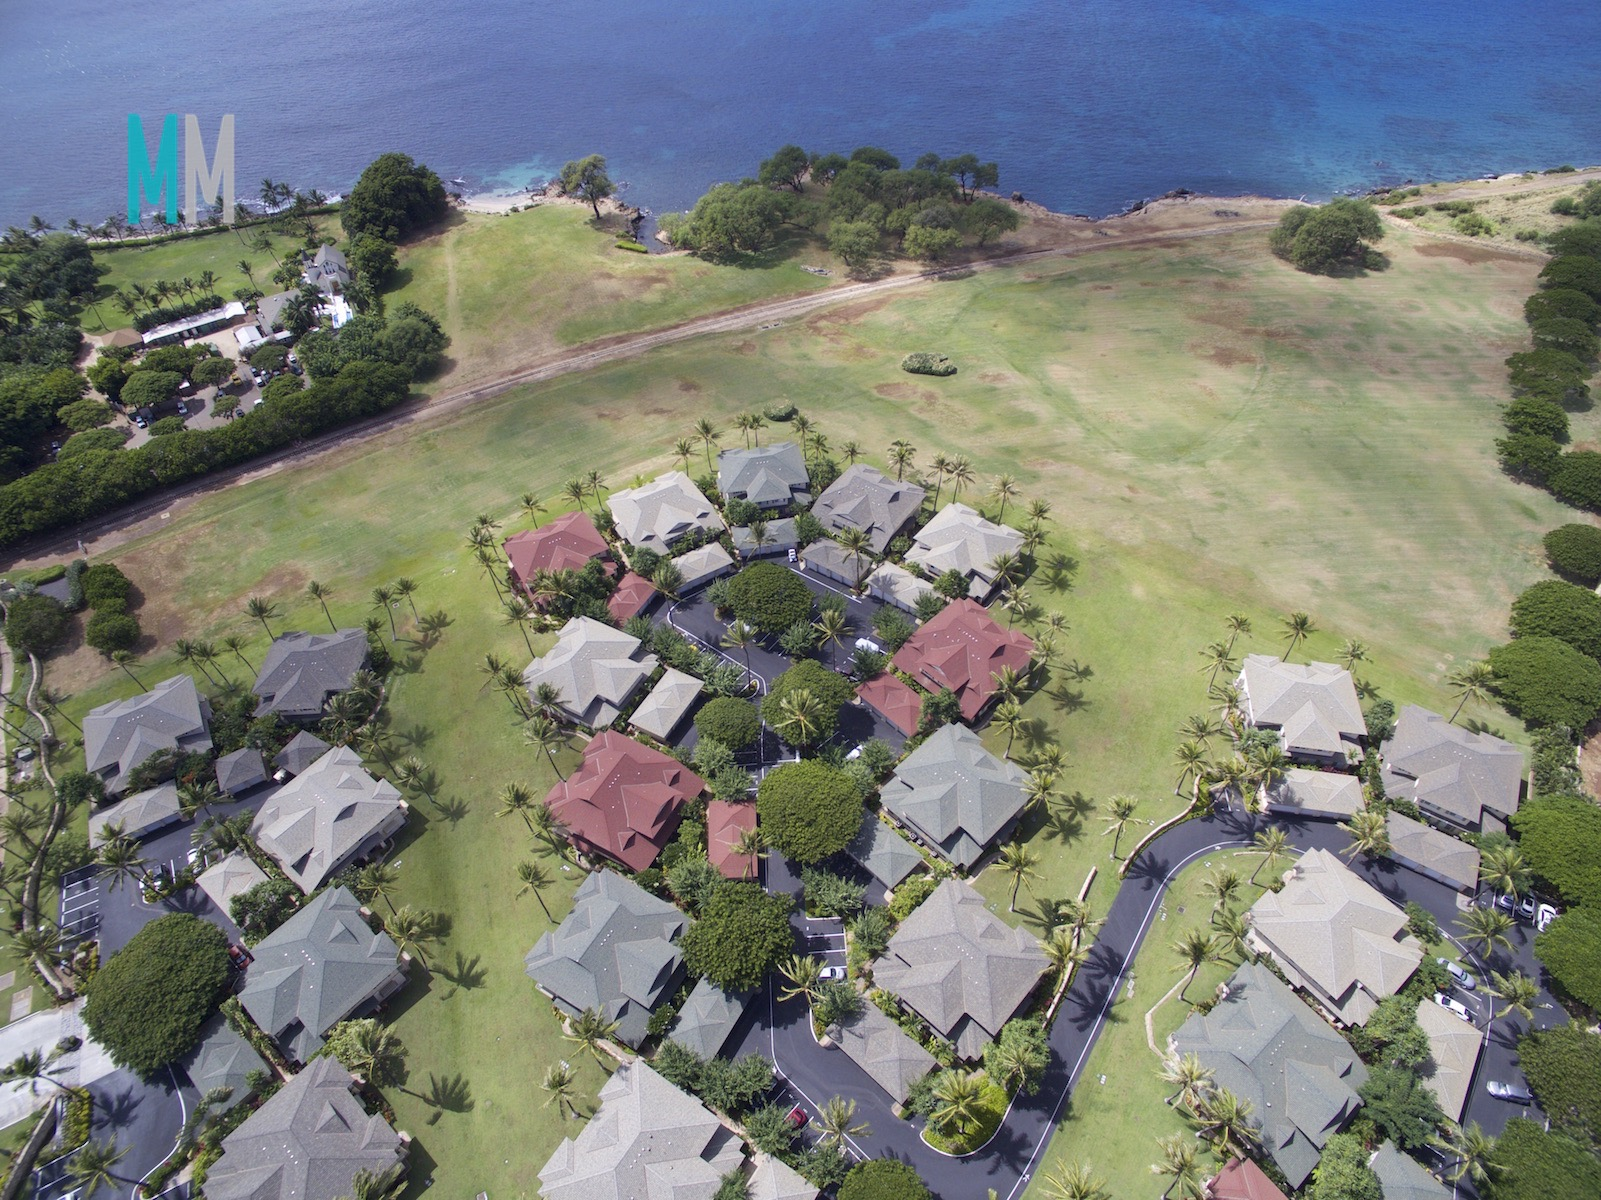 kai-lani-ko-olina-aerial-view-munro-murdock-hawaii-real-estate-dji_0044